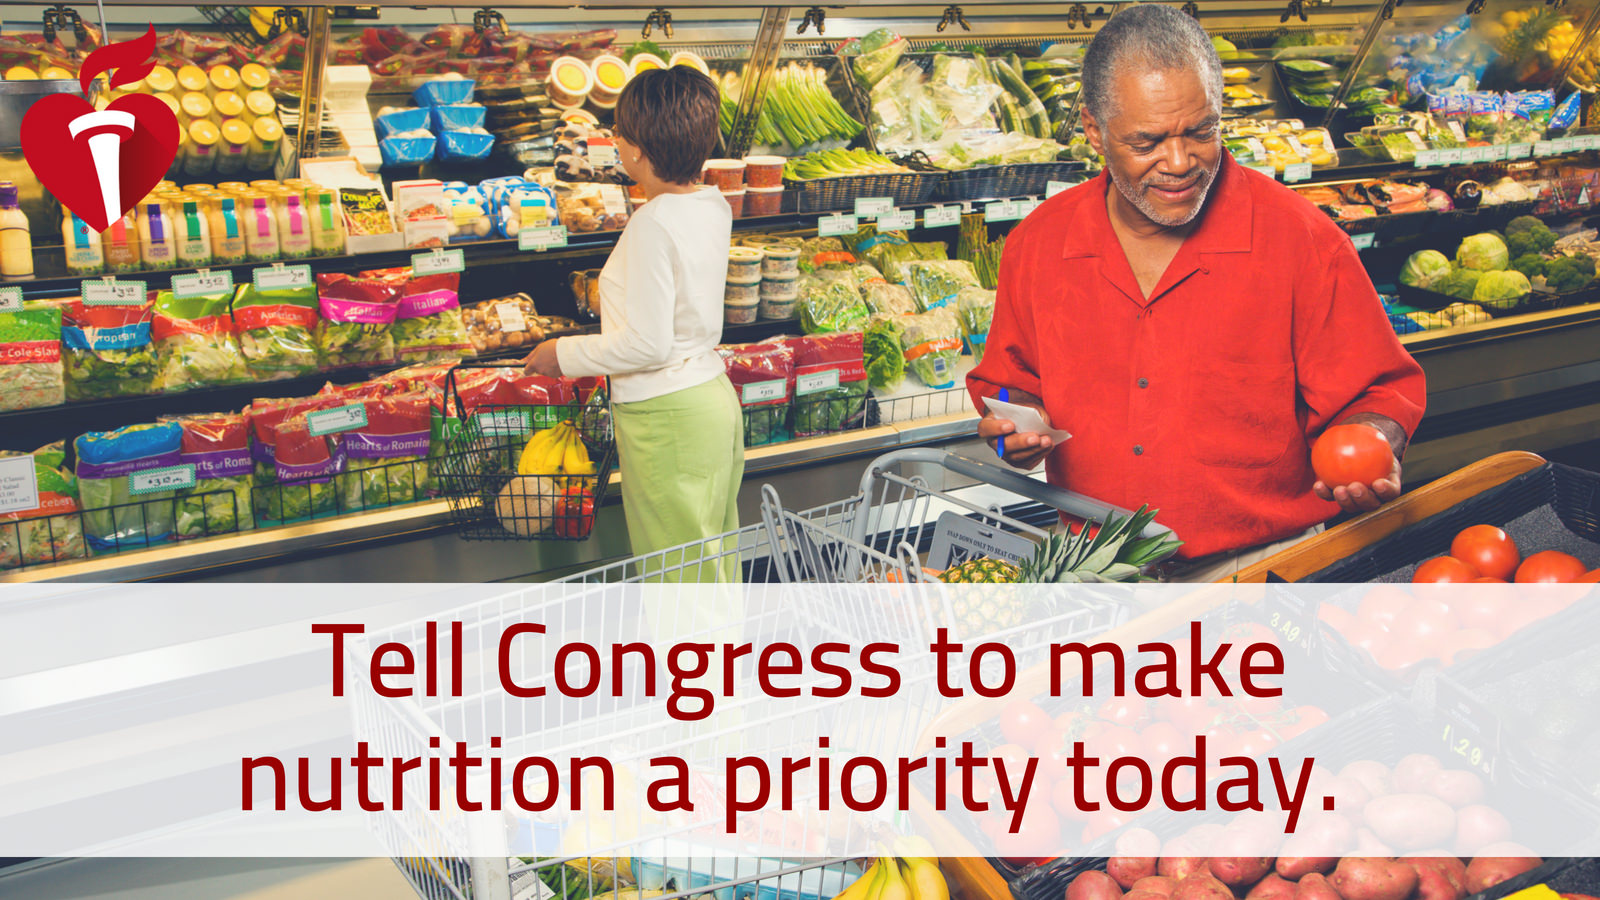 Congress: Prioritize nutrition programs